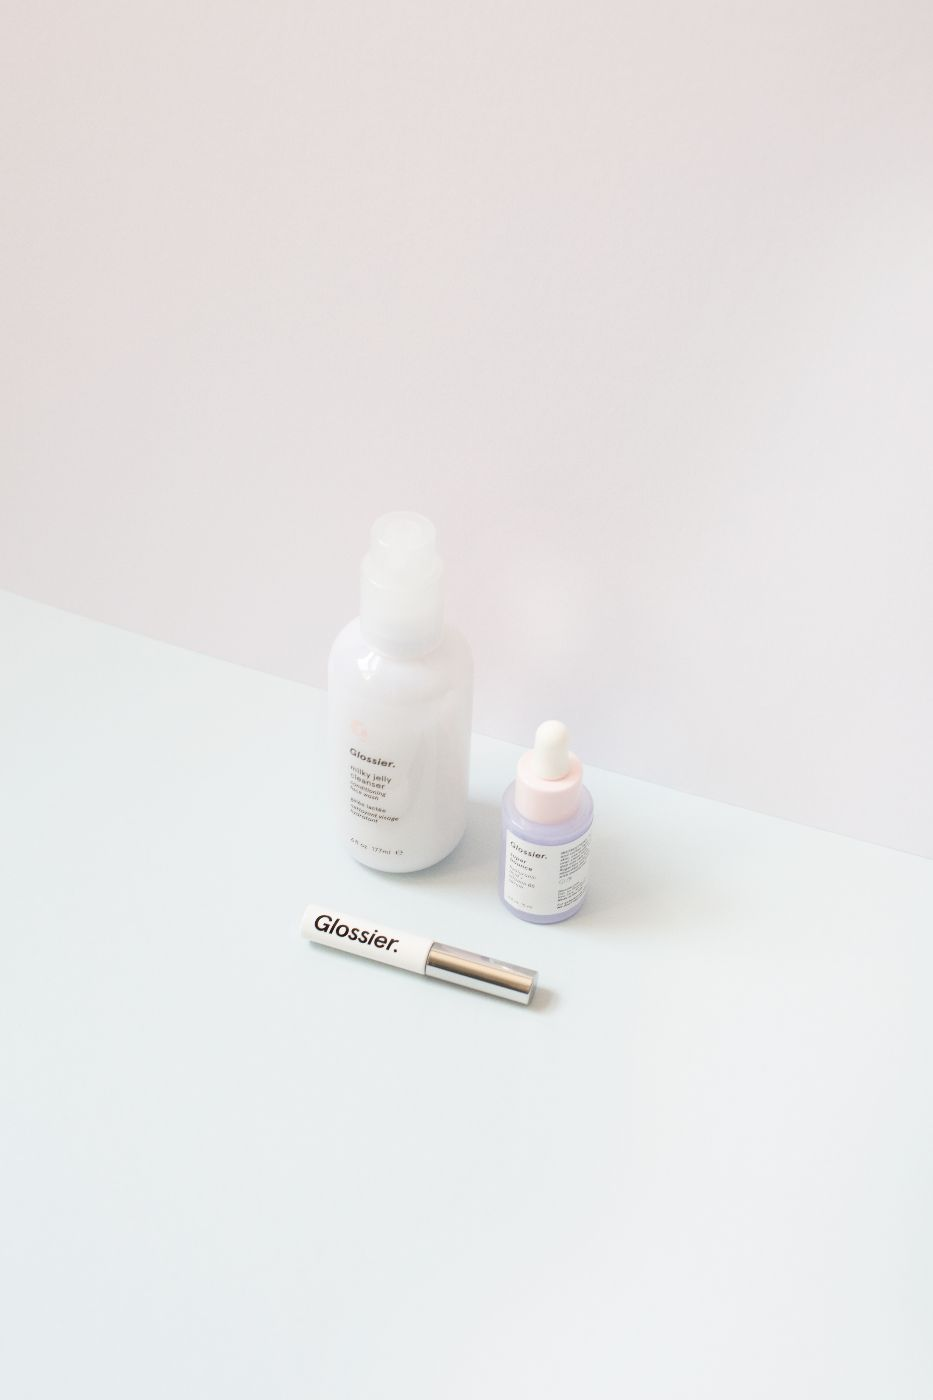 theannaedit-beauty-repurchases-glossier-clarins-bumbleandbumble-june-2017-6